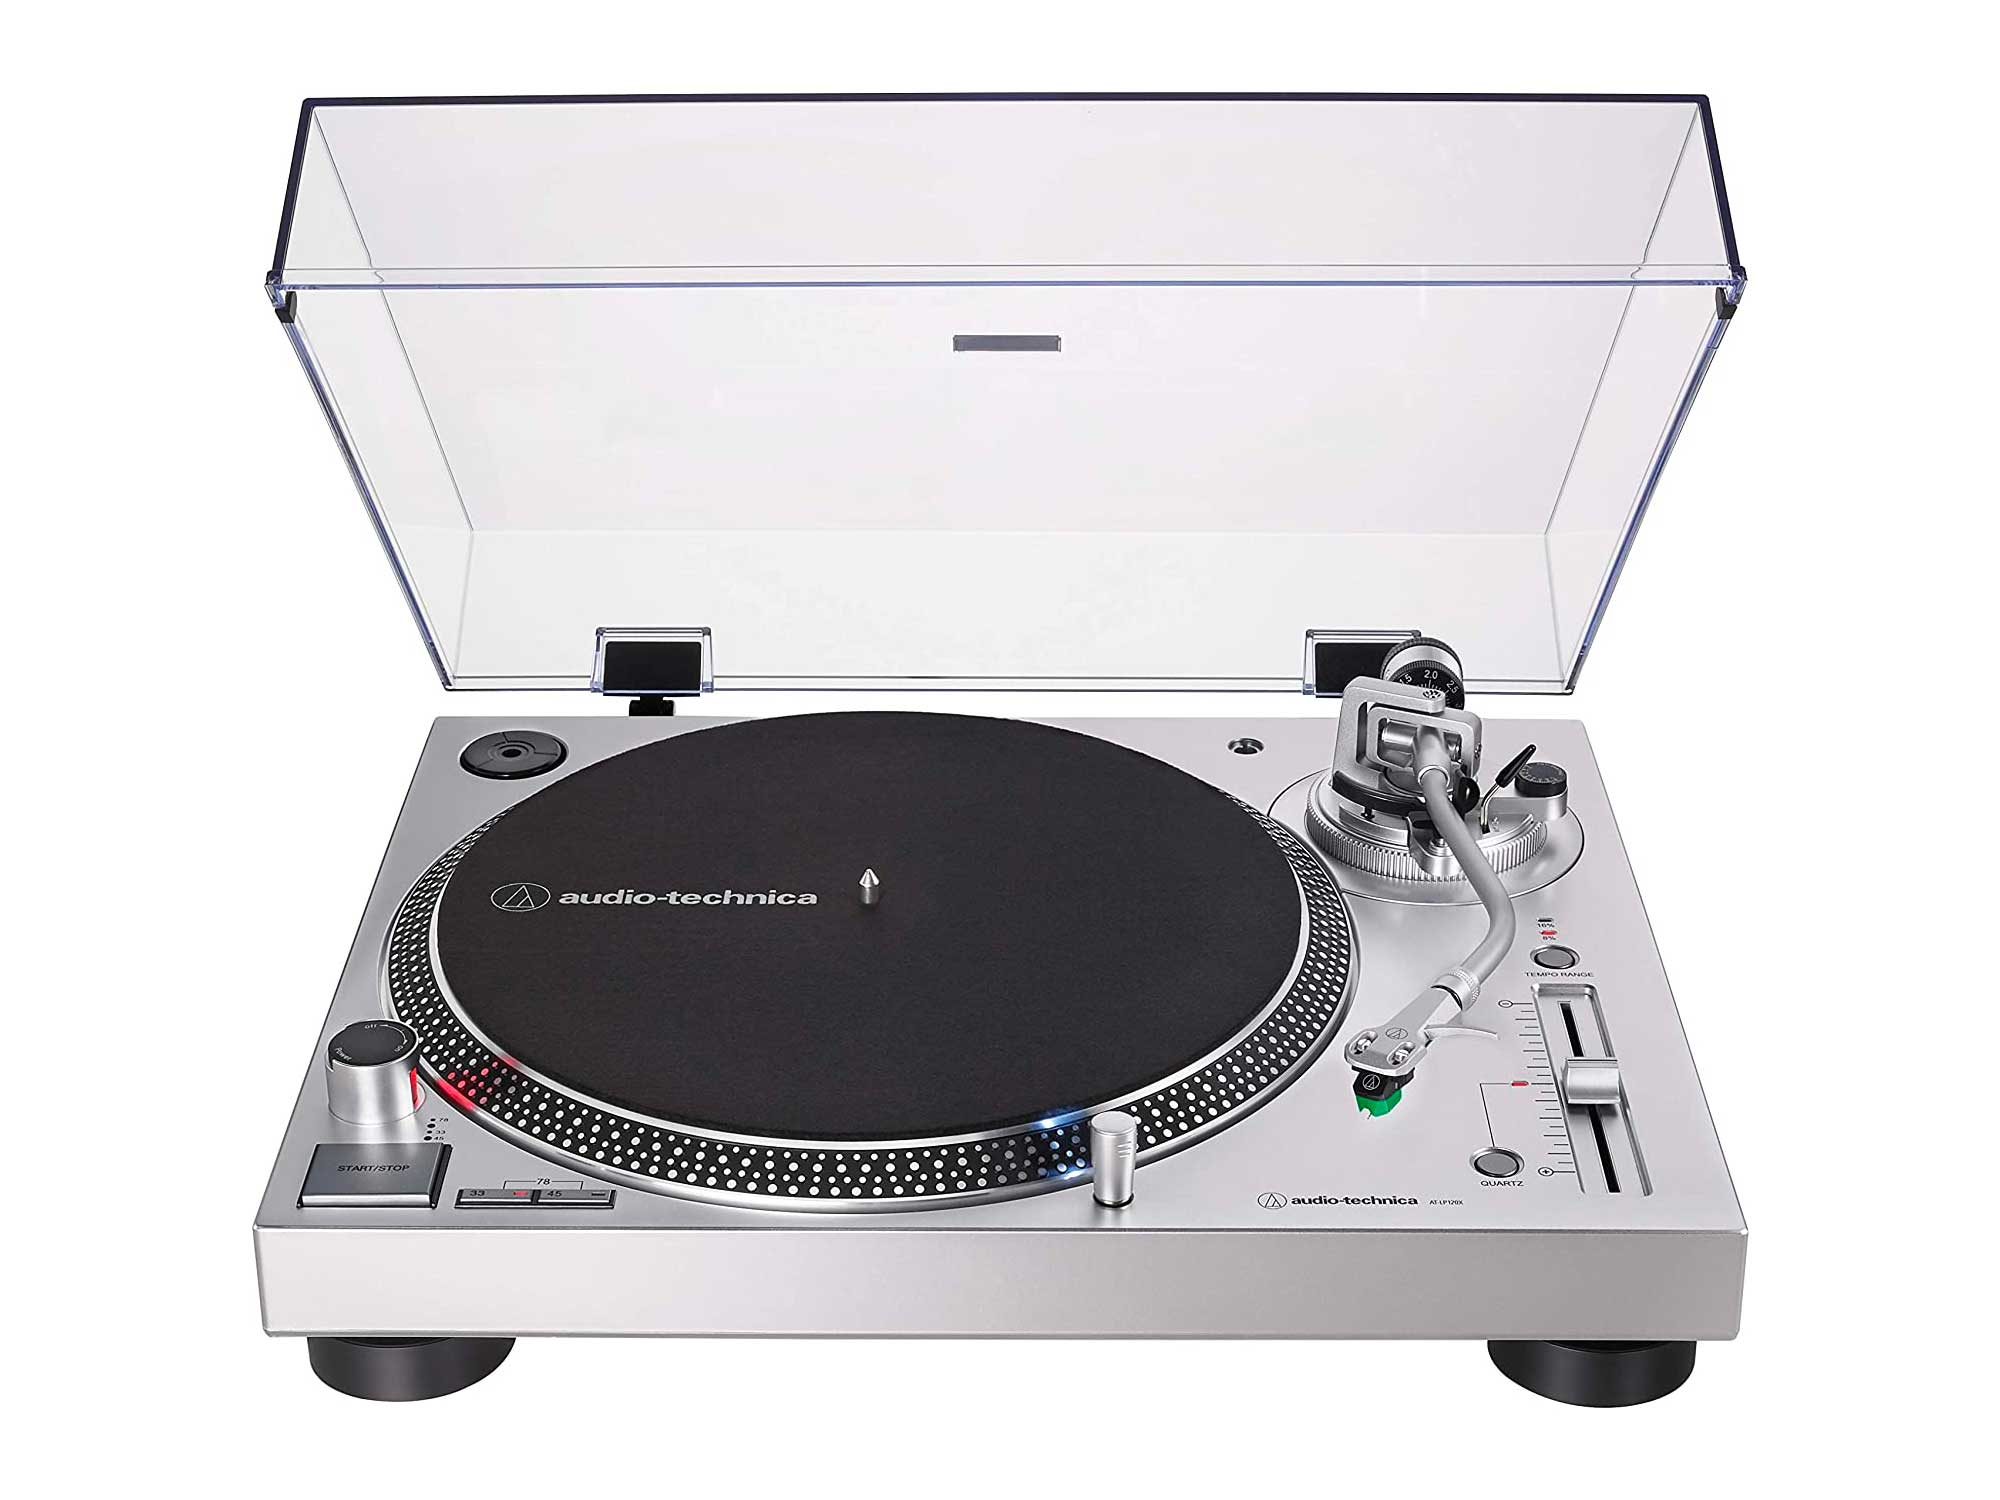 Audio-Technica Direct-Drive Turntable (Analog & USB), Silver, Fully Manual, Hi-Fi, 3 Speed, Convert Vinyl to Digital, Anti-Skate Control, Variable Pitch Control